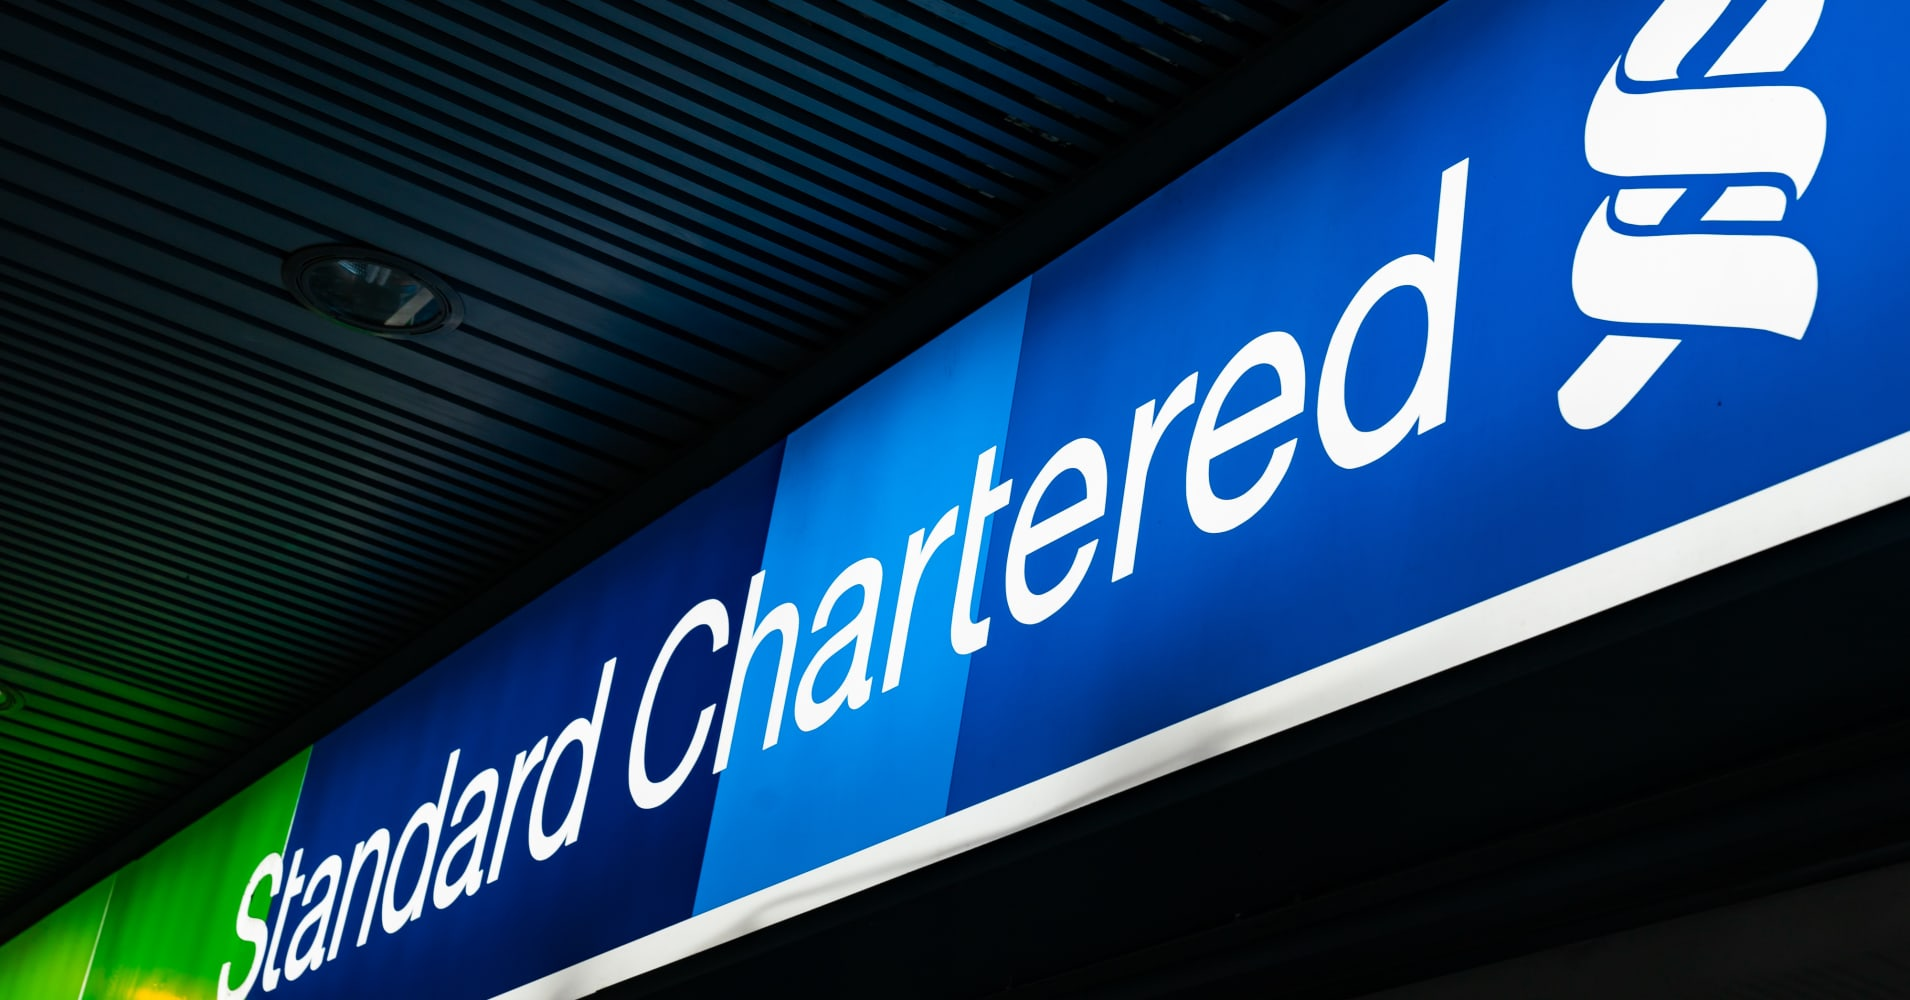 Standard Chartered expected to pay just over $1 billion to resolve US, UK probes